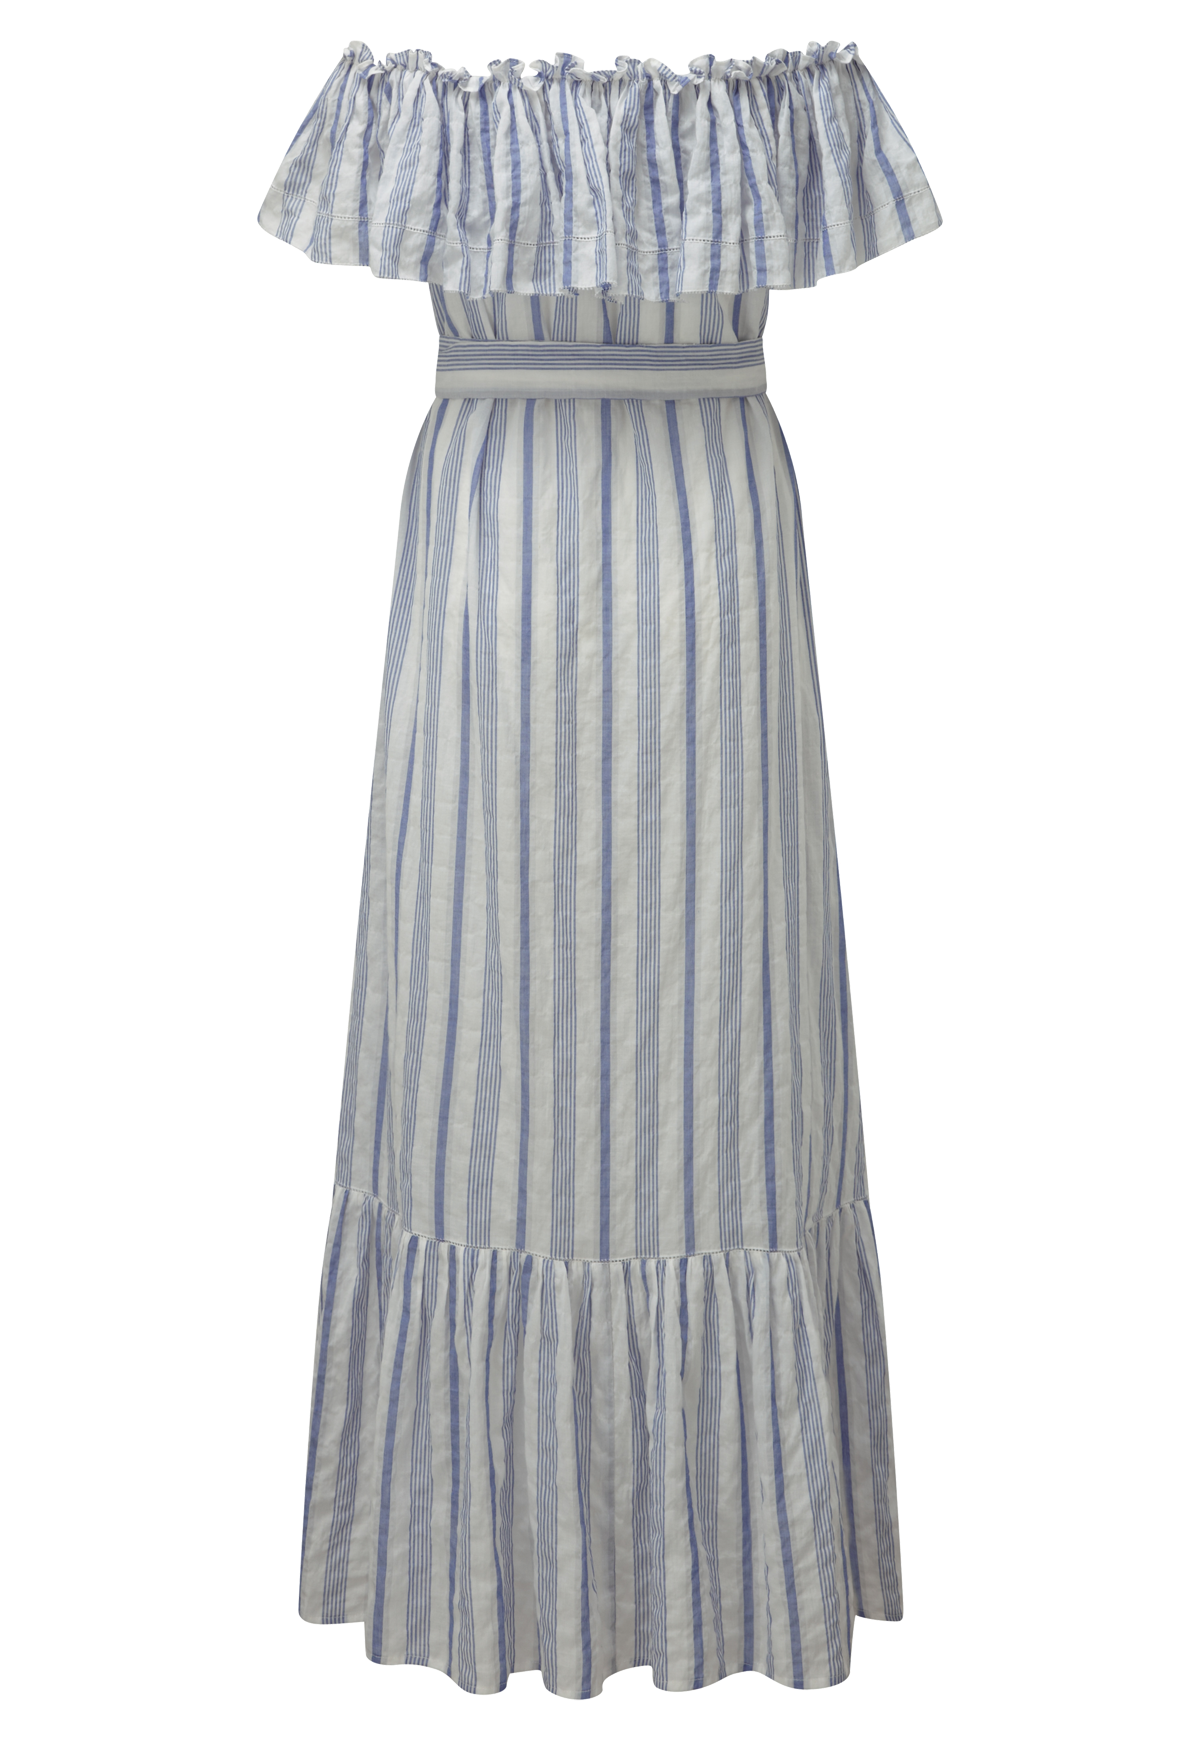 MIRA BUTTON DOWN BLUE STRIPED DRESS